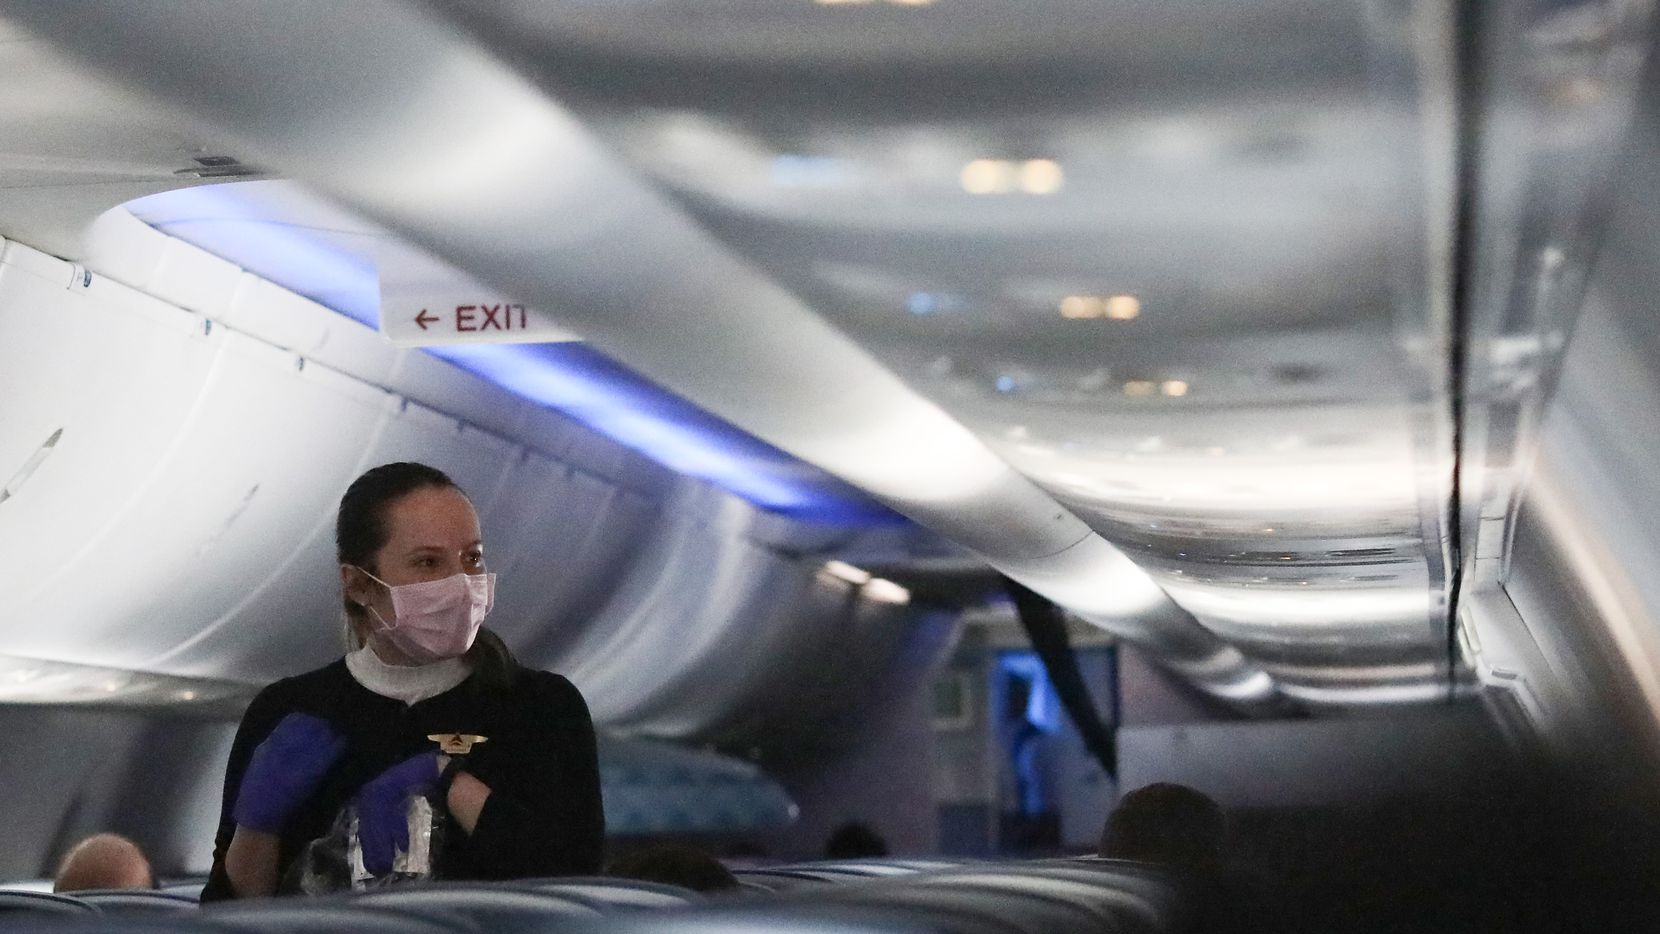 On April 20, a Delta flight attendant served a snack on a nearly empty flight from Baltimore to Atlanta. A majority of Texans aren't going to travel again by air until at least August because of the coronavirus outbreak, though half of those between 18 and 24 years old say they'll fly by July 30, a new Dallas Morning News-University of Texas at Tyler poll found.